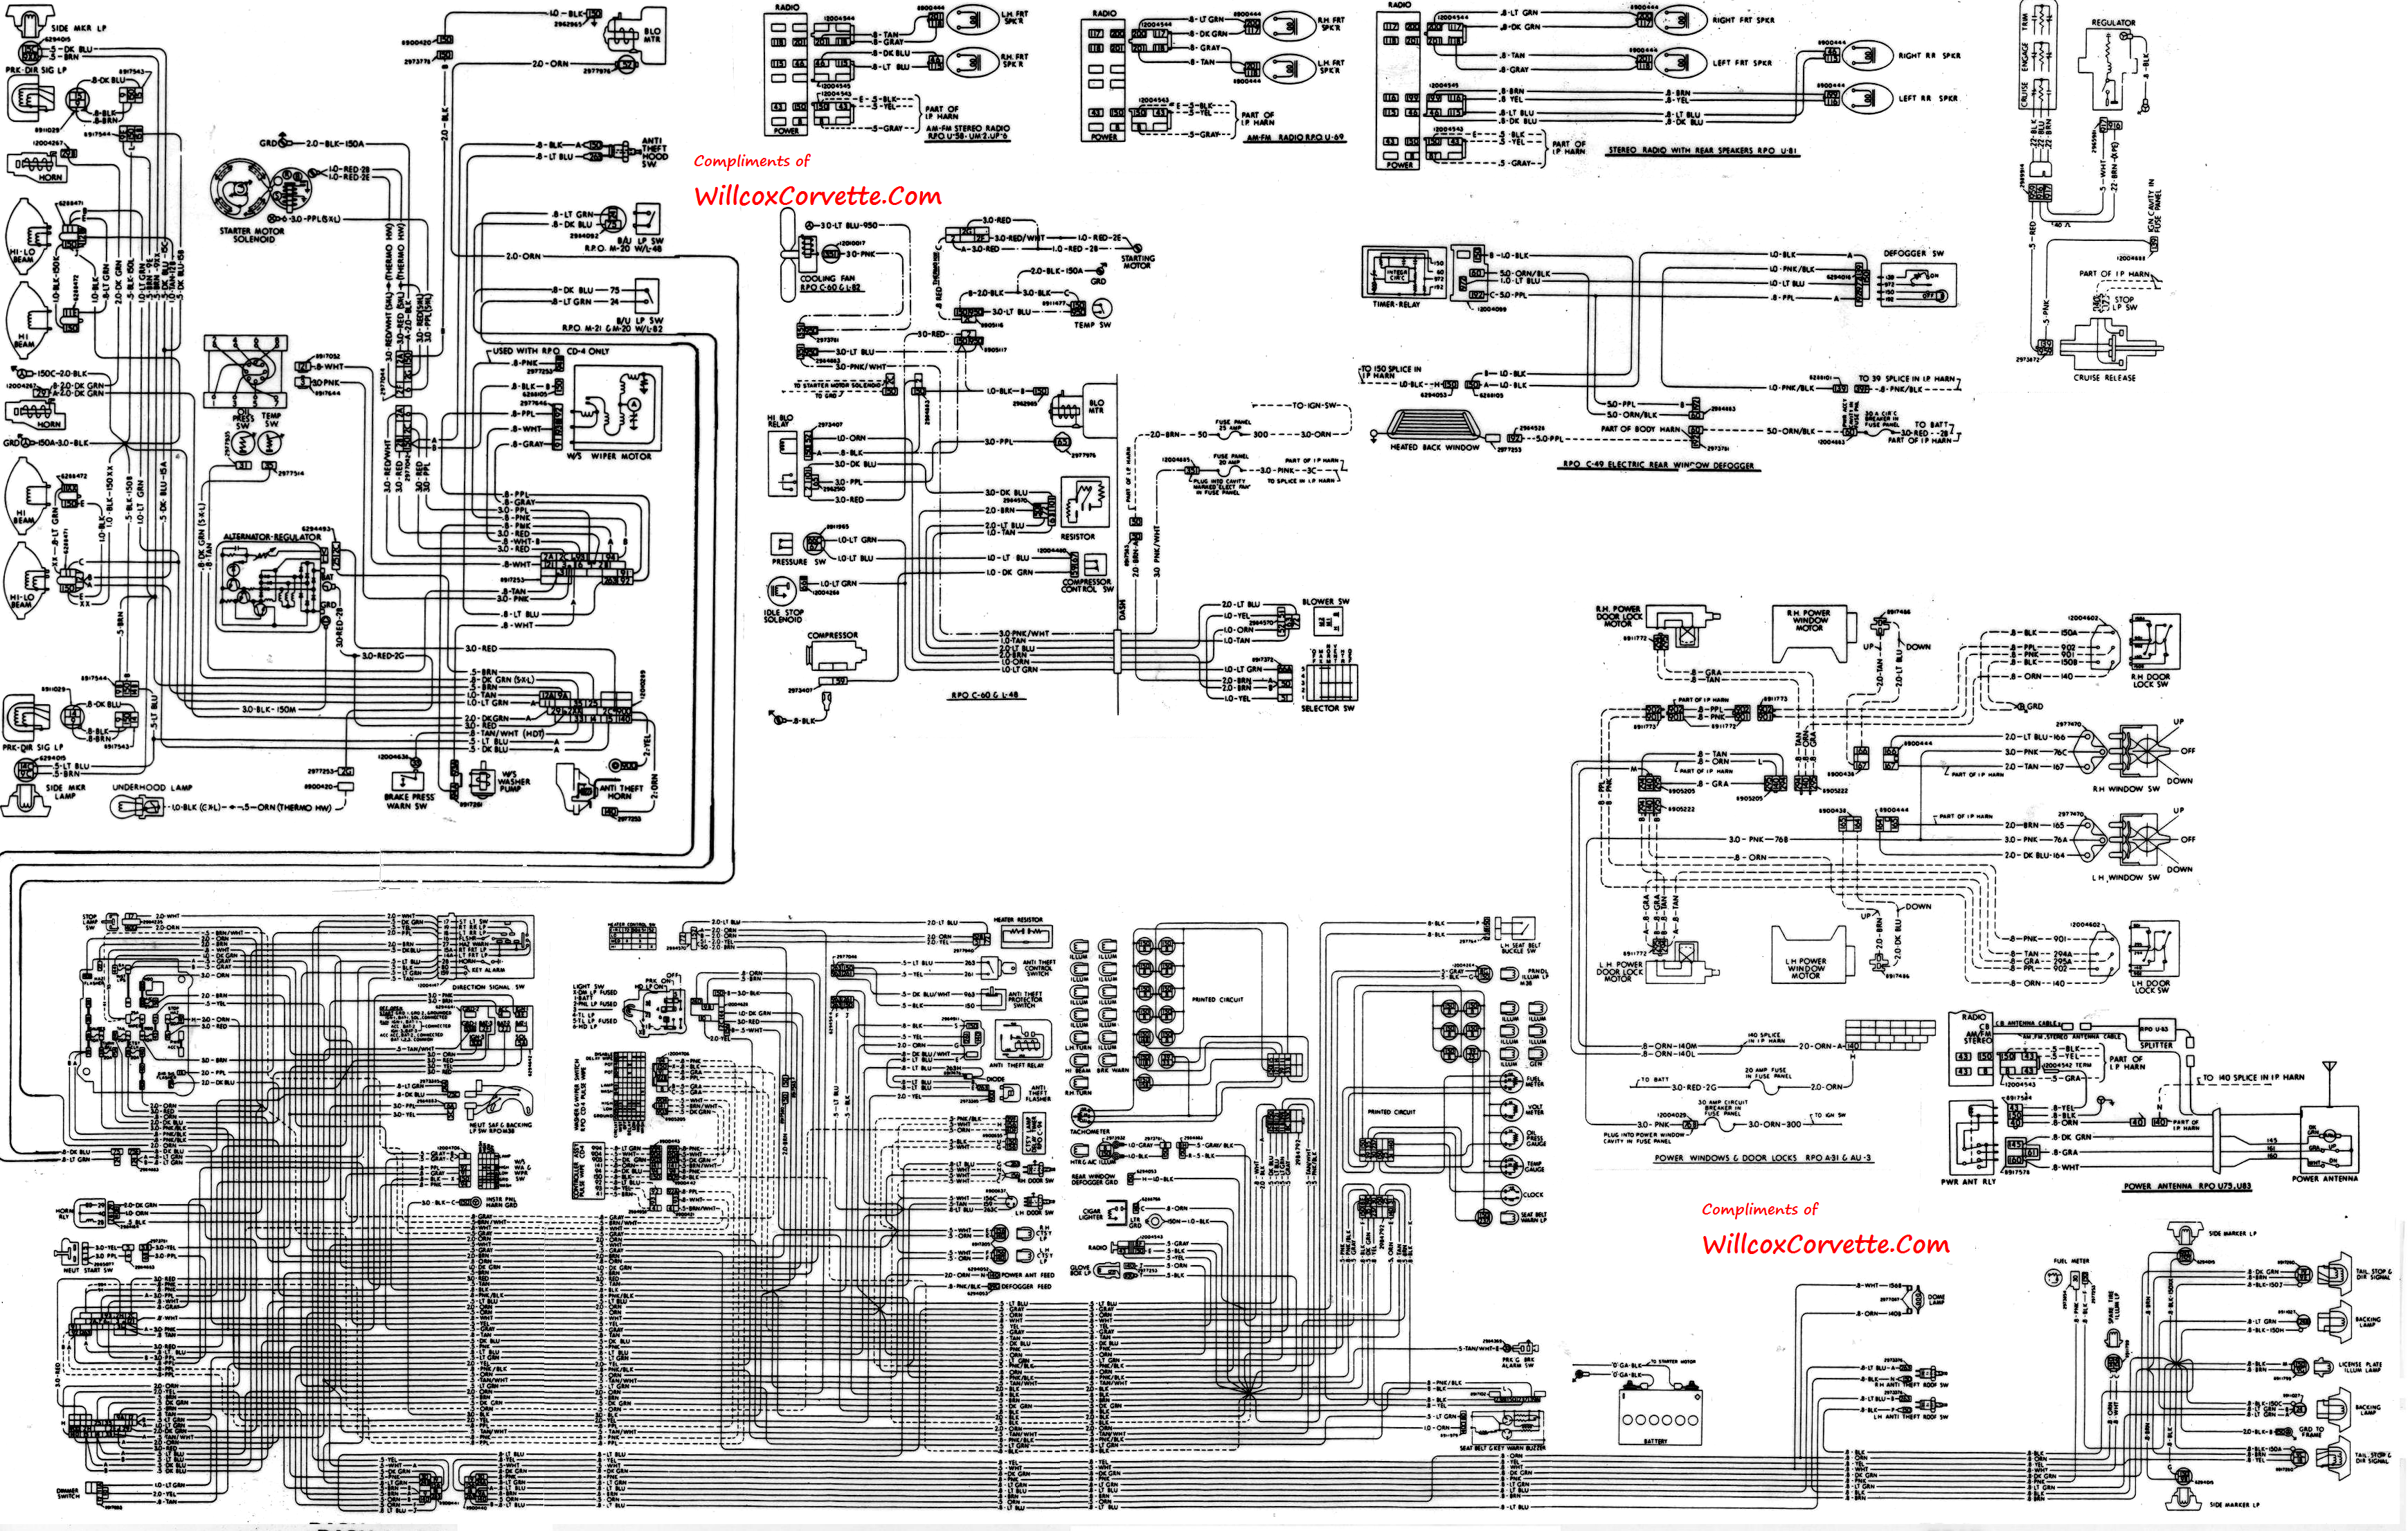 1979 wire diagram 1979 corvette tracer wiring diagram tracer schematic willcox 1977 corvette wiring diagram at gsmportal.co